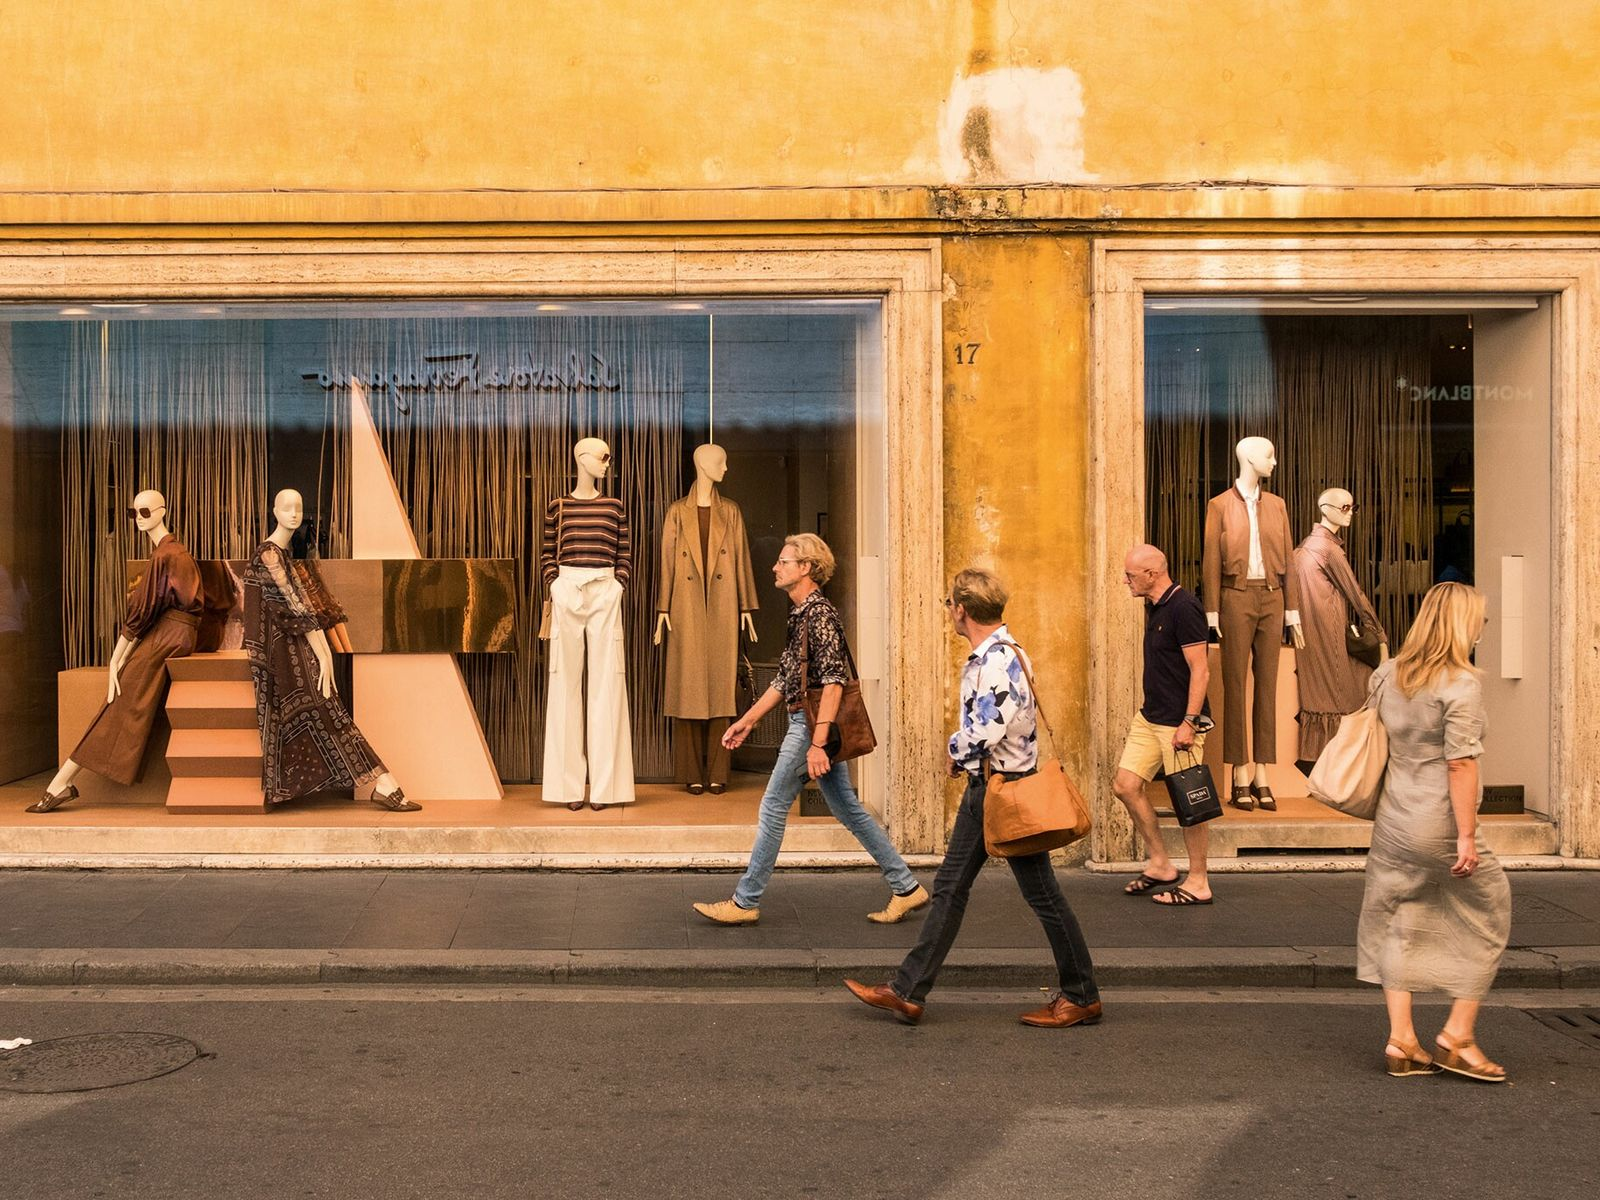 Shoppers browse the boutiques on Via Condotti in the district of Monti.